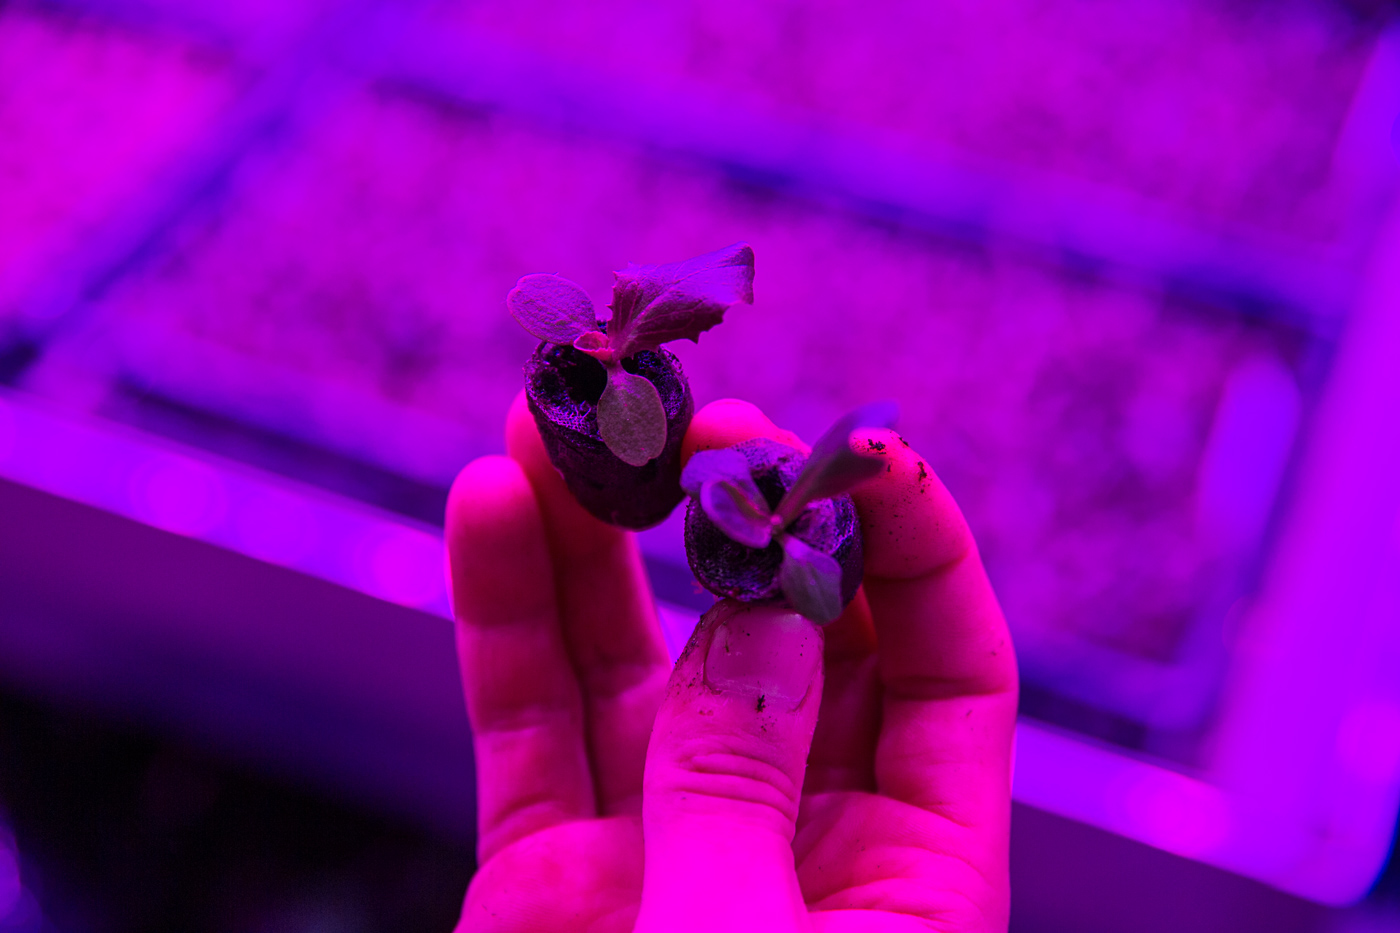 Seedlings are started under artificial light before moving into the hydroponics greenhouse at Superior Fresh based in Hixton, WI.